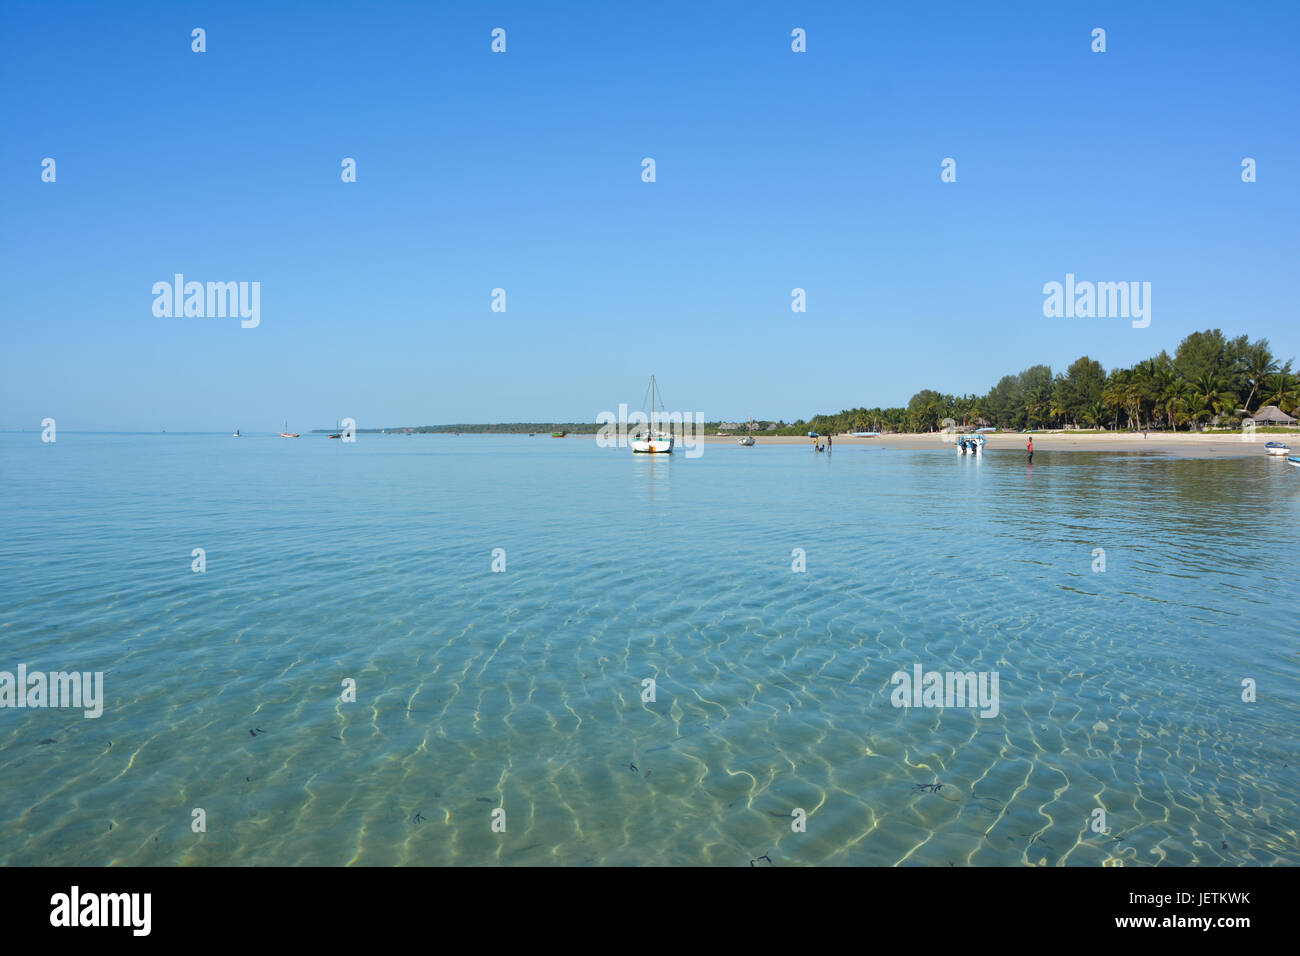 Flat ocean scene with boats by an island off Mozambique Stock Photo